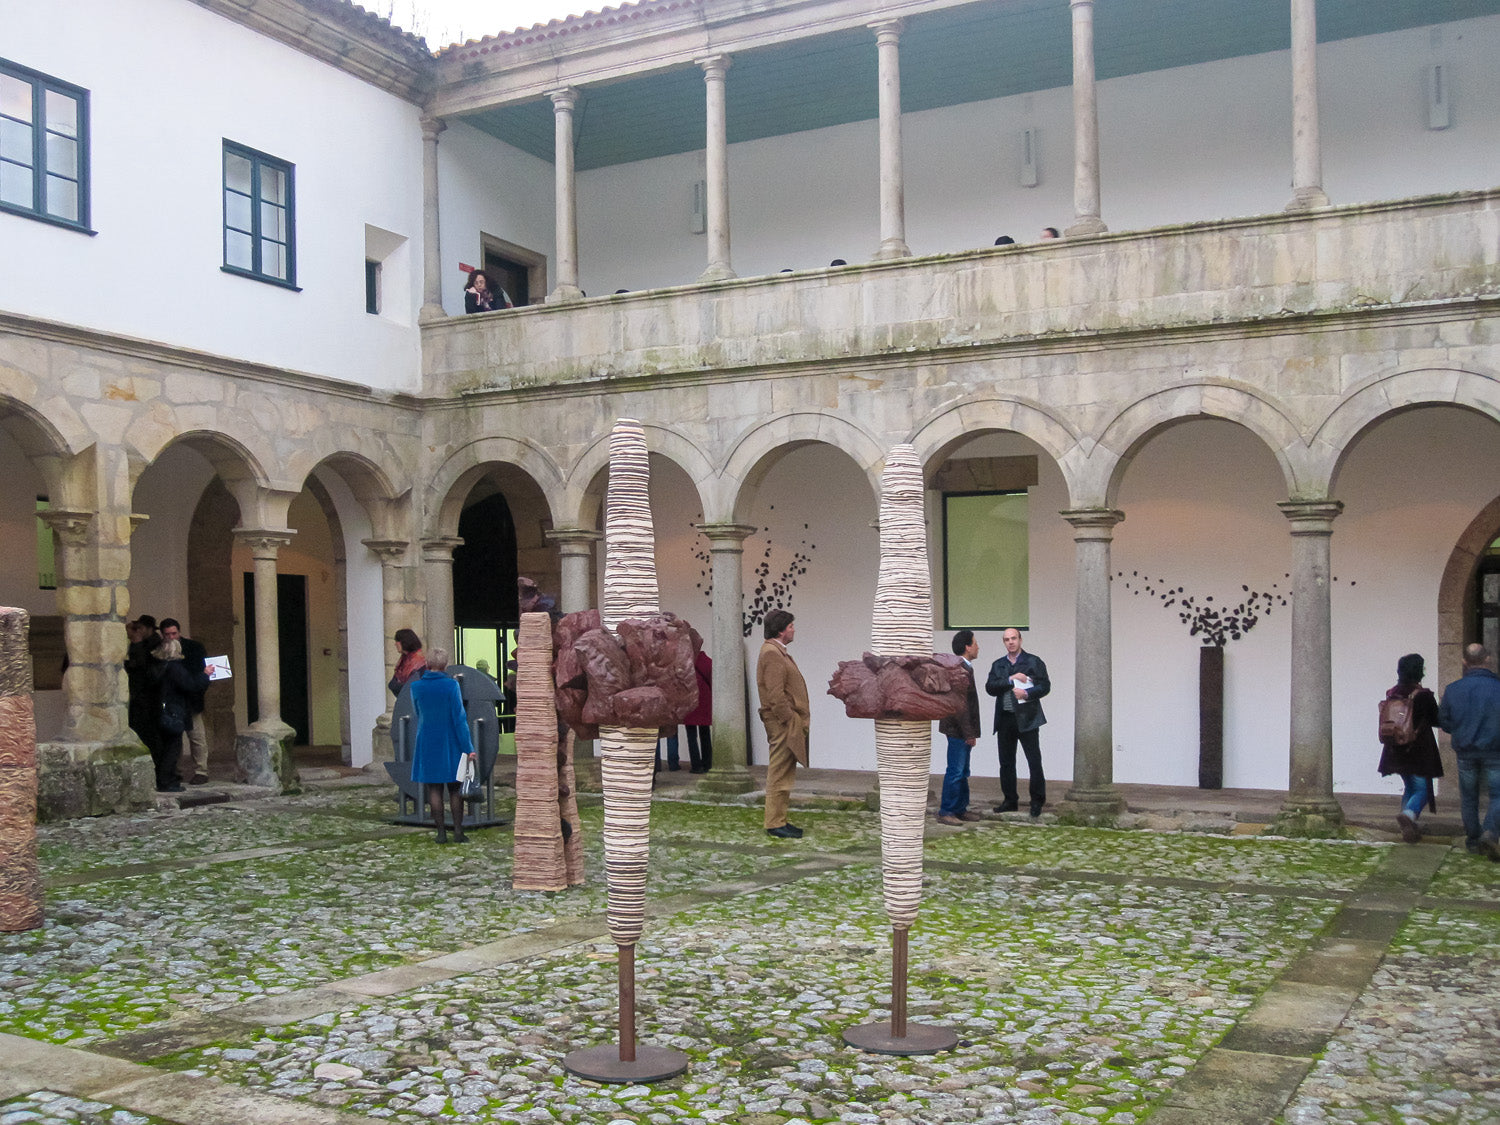 João Carqueijeiro Group Exhibition at Museu Amadeo de Souza-Cardoso